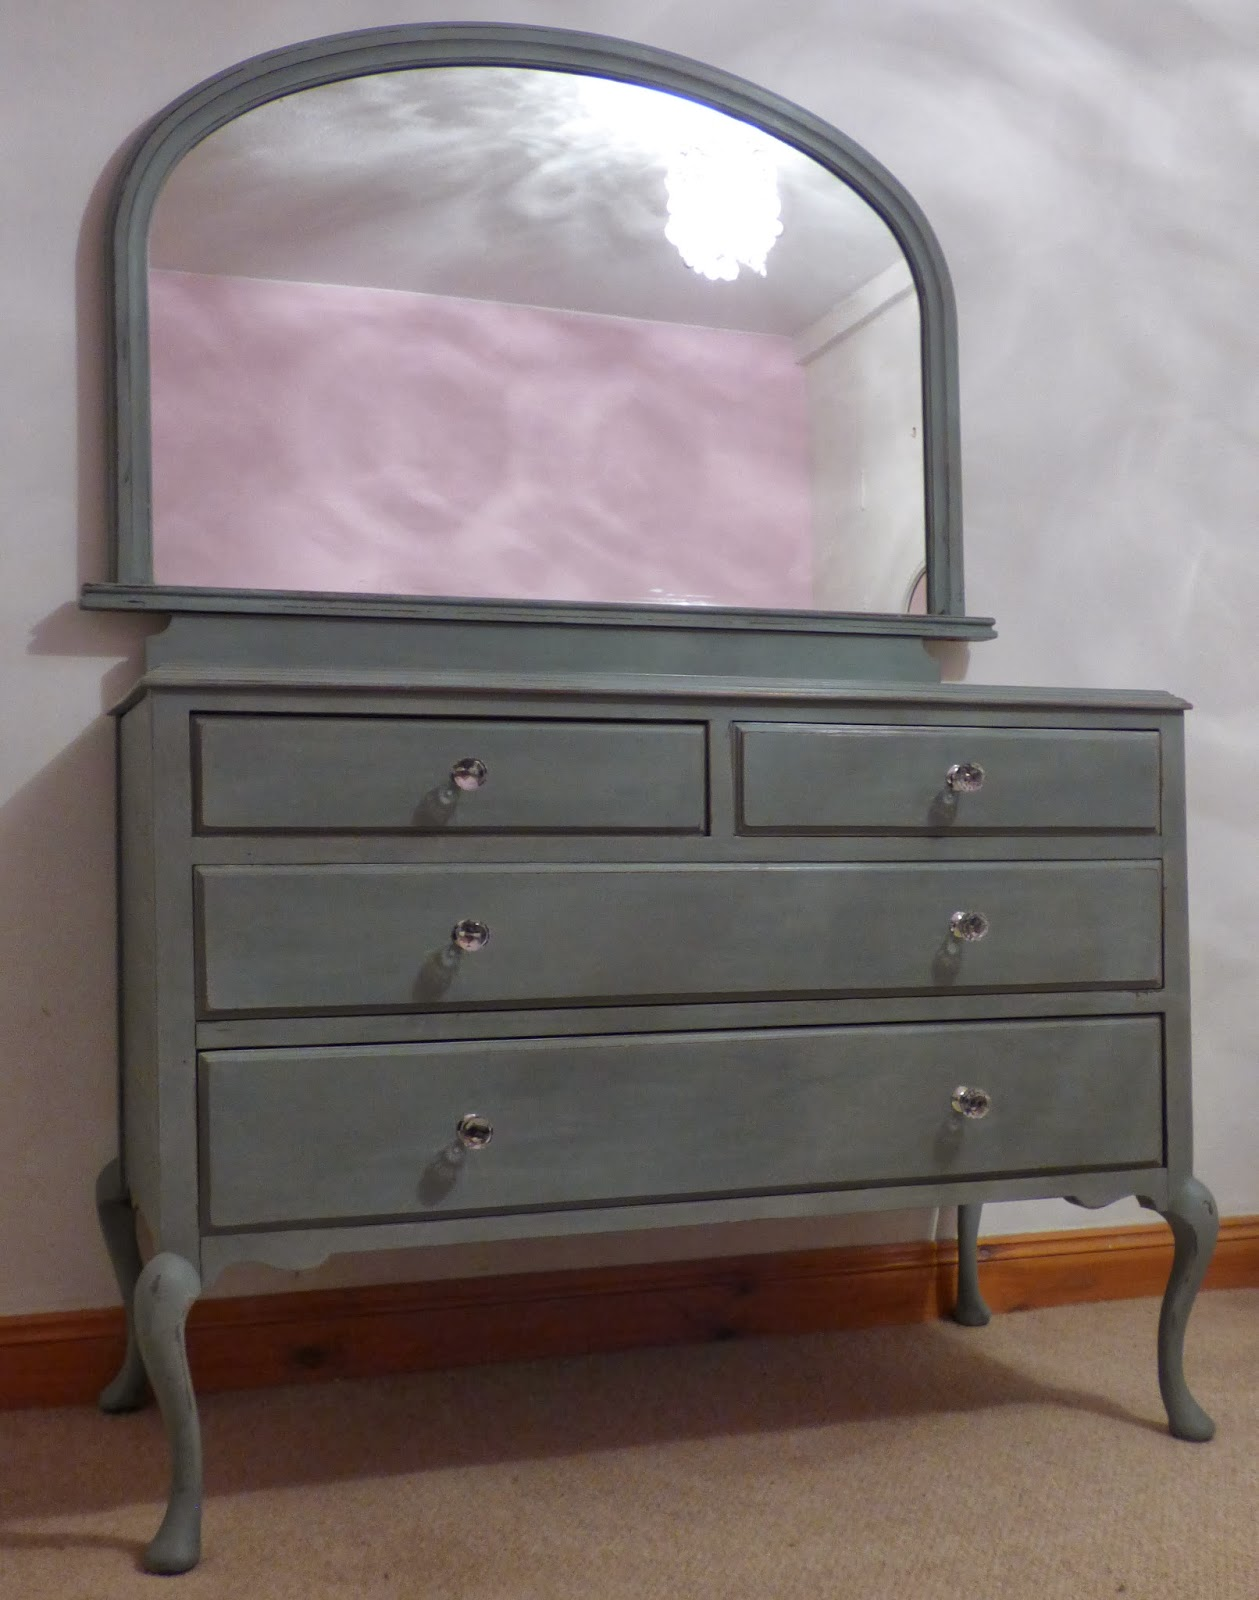 duck egg blue shabby. I Did Think Long And Hard About What Colour To Go With - Pretty Tempted By Pink Tell You The Truth! But Opted For A Duck Egg Blue In End. Shabby 2